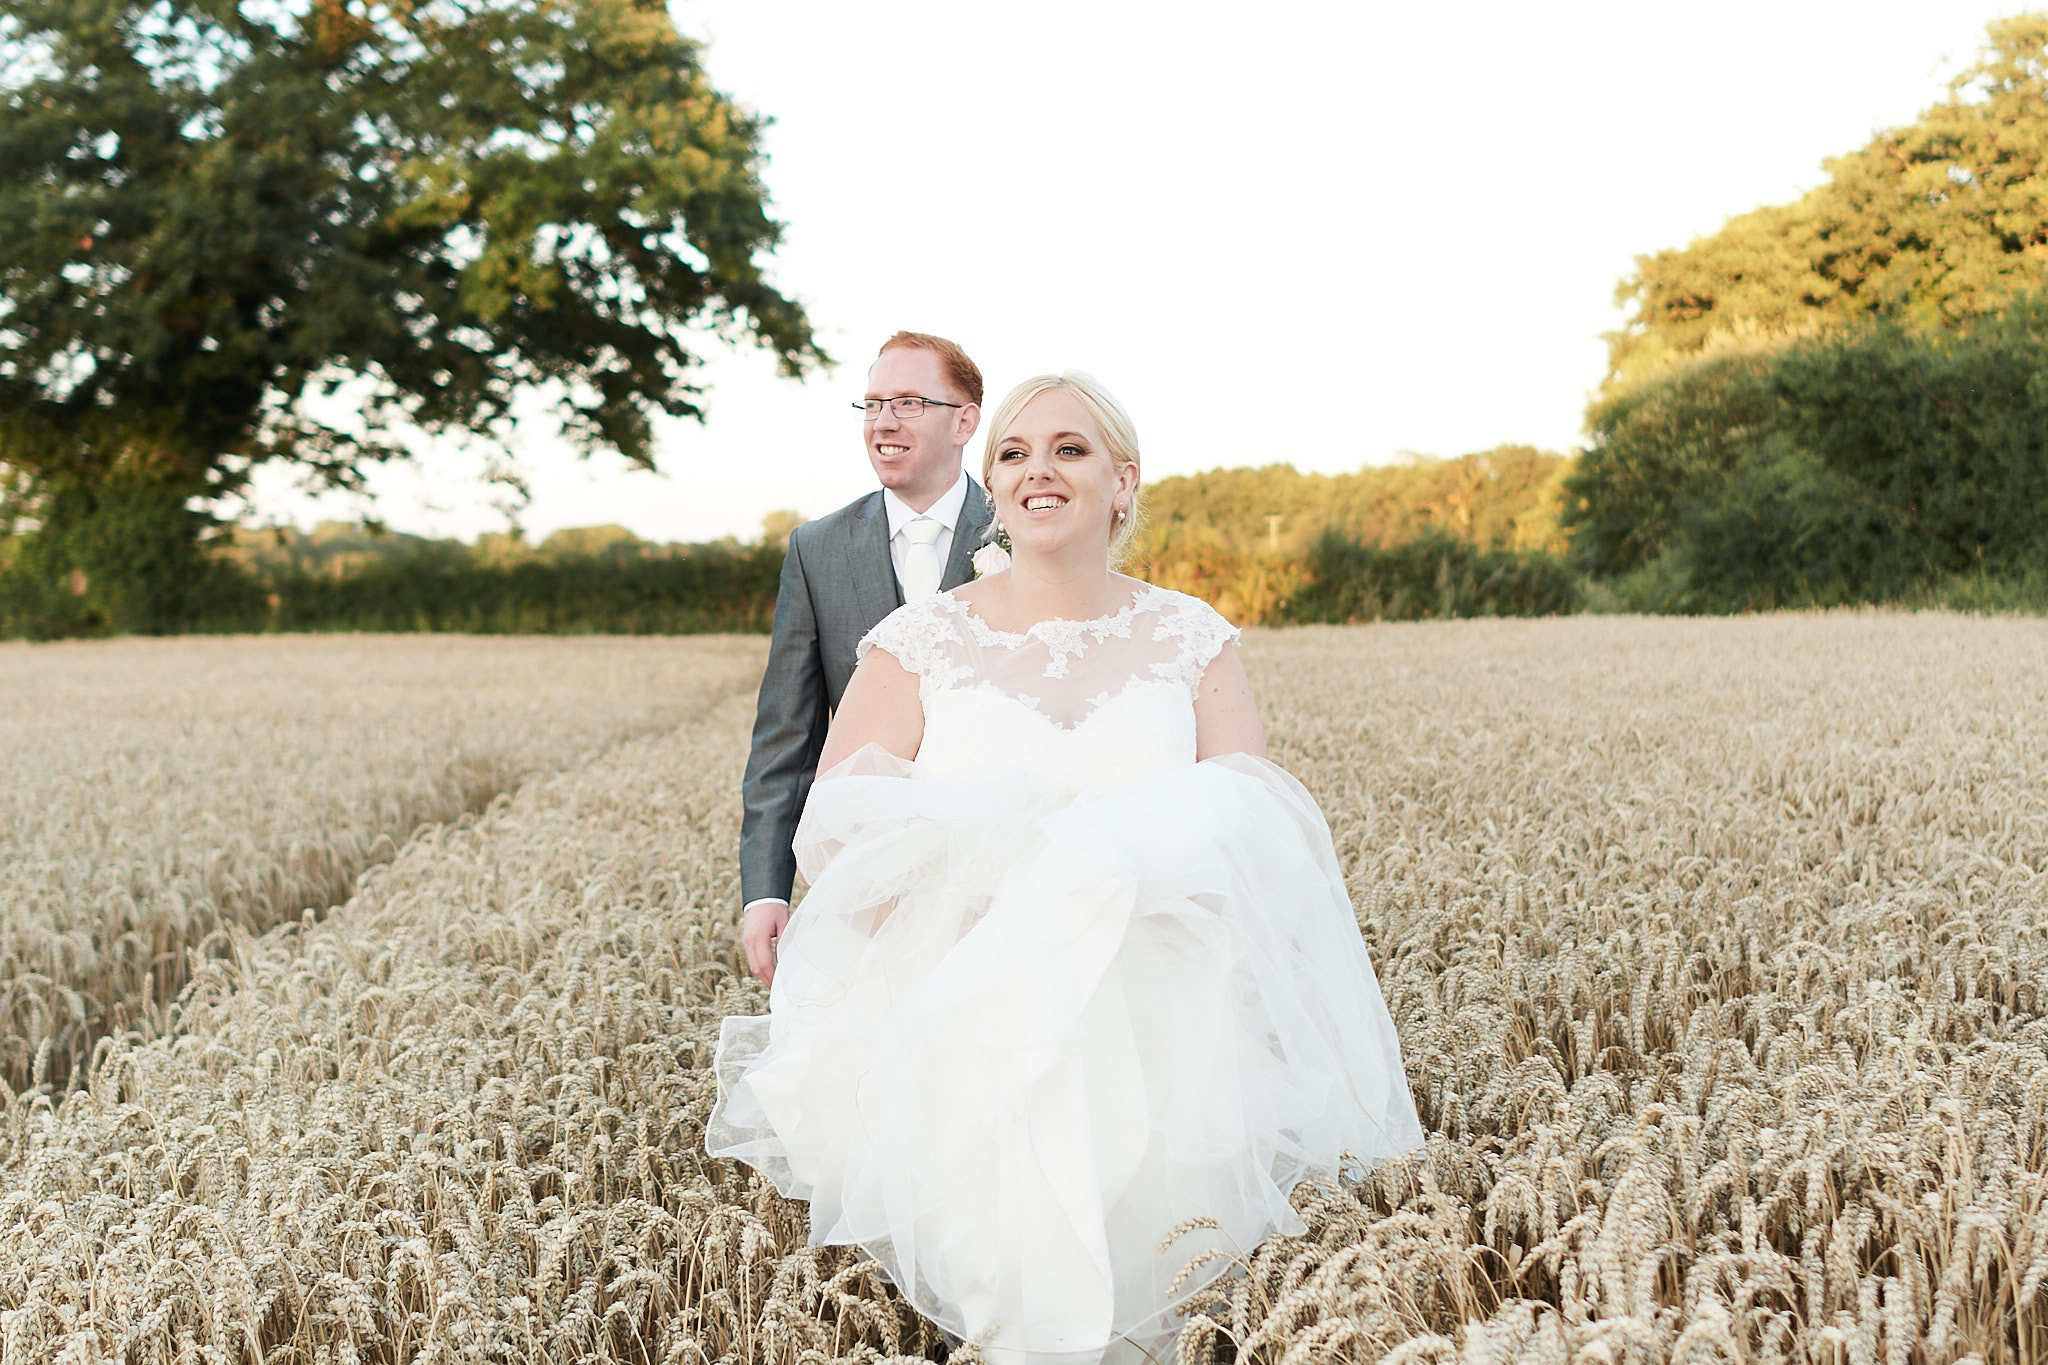 bride and groom walk through a field at sunset on their wedding day at the Boathouse, Norfolk. by Norfolk photographer